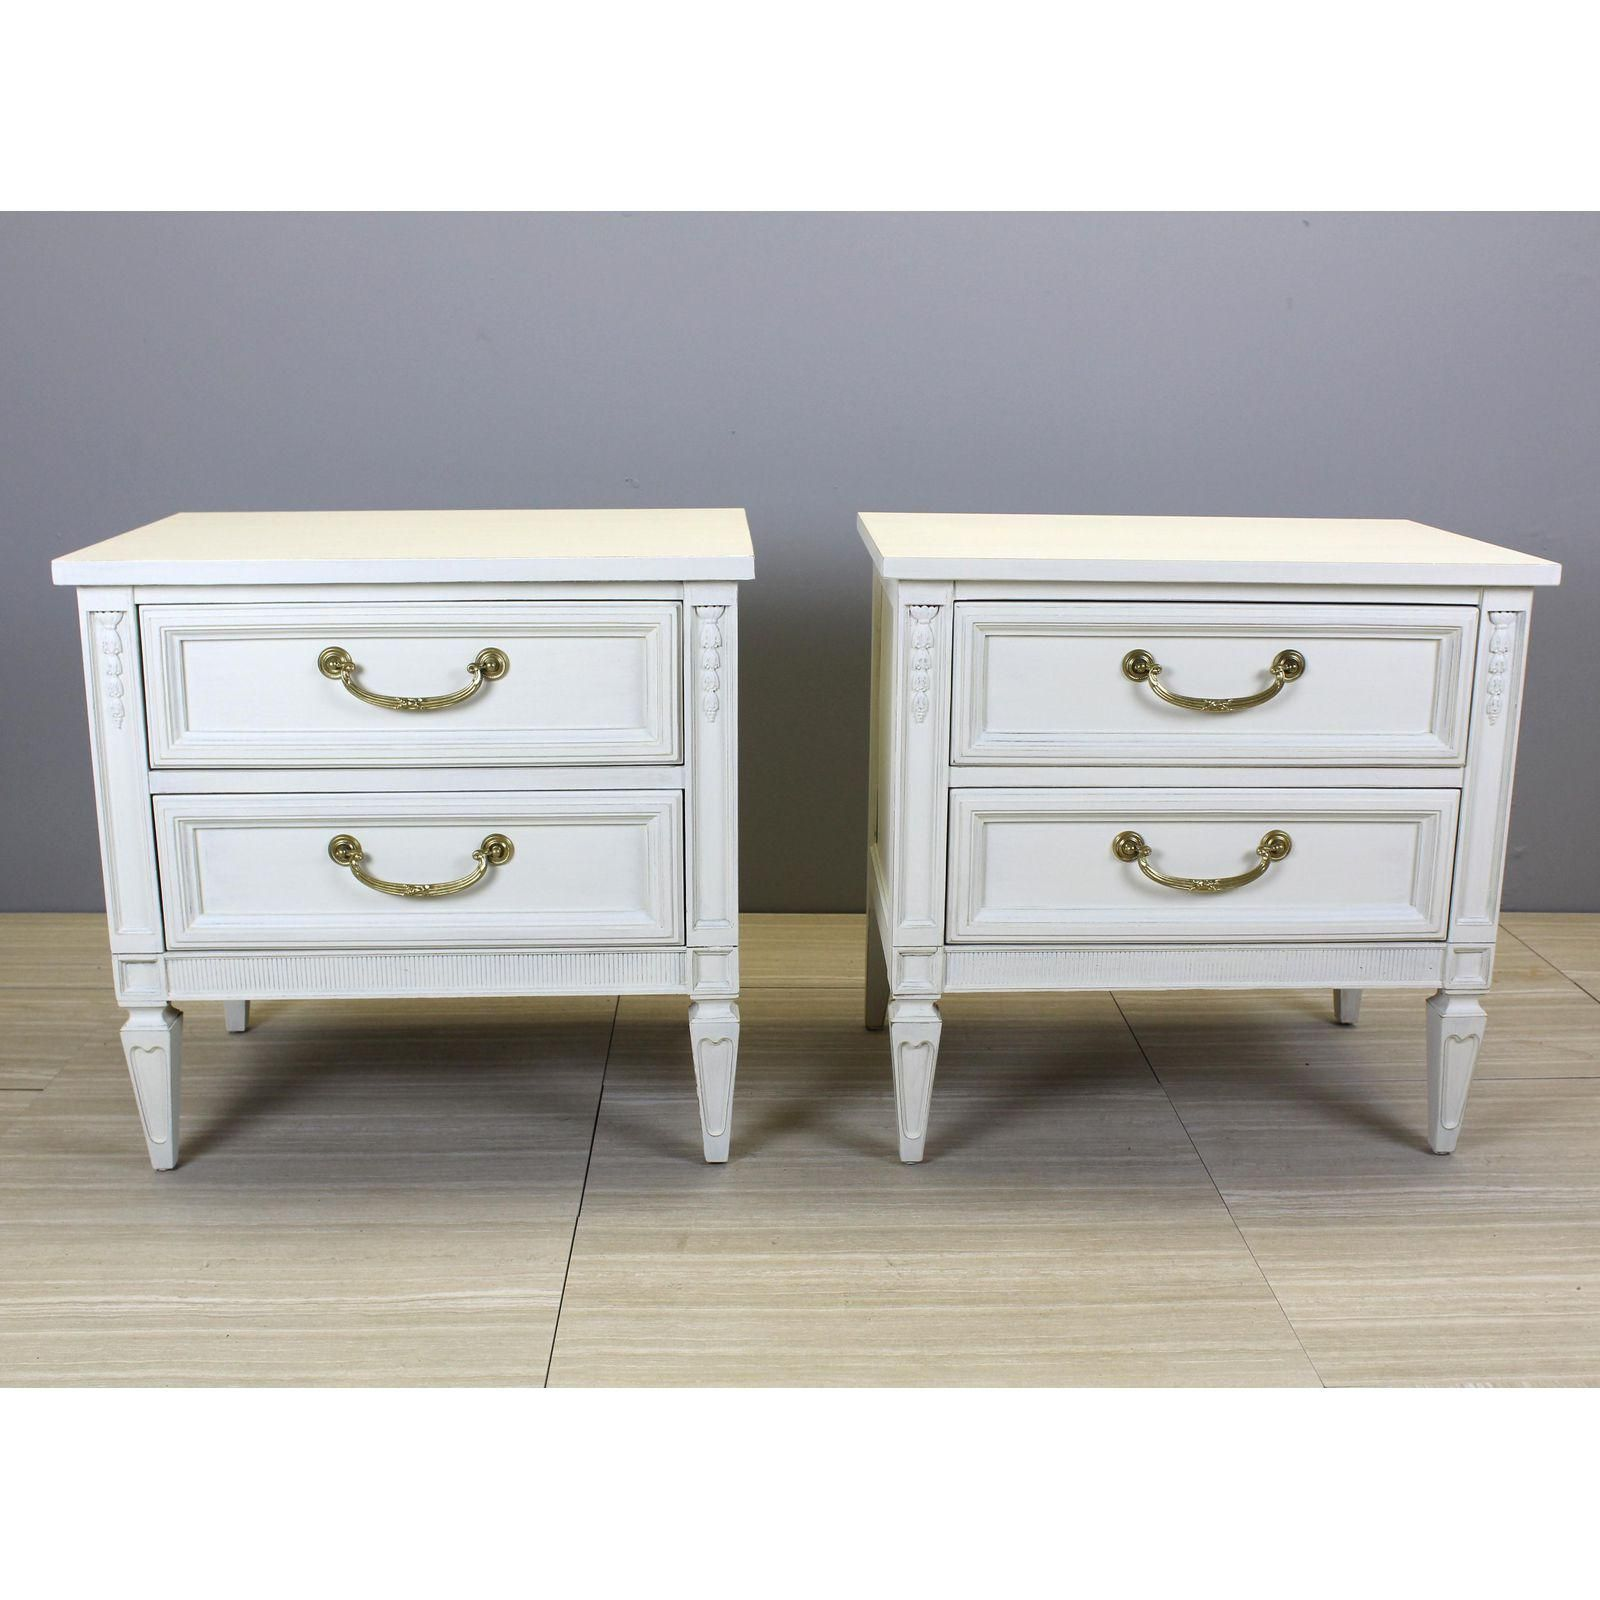 Pair Of Mid Century Neoclassical Style Nightstands White Nightstands Vintage Nightstands Image 3 O Vintage Nightstand Bedside Tables Nightstands Nightstand